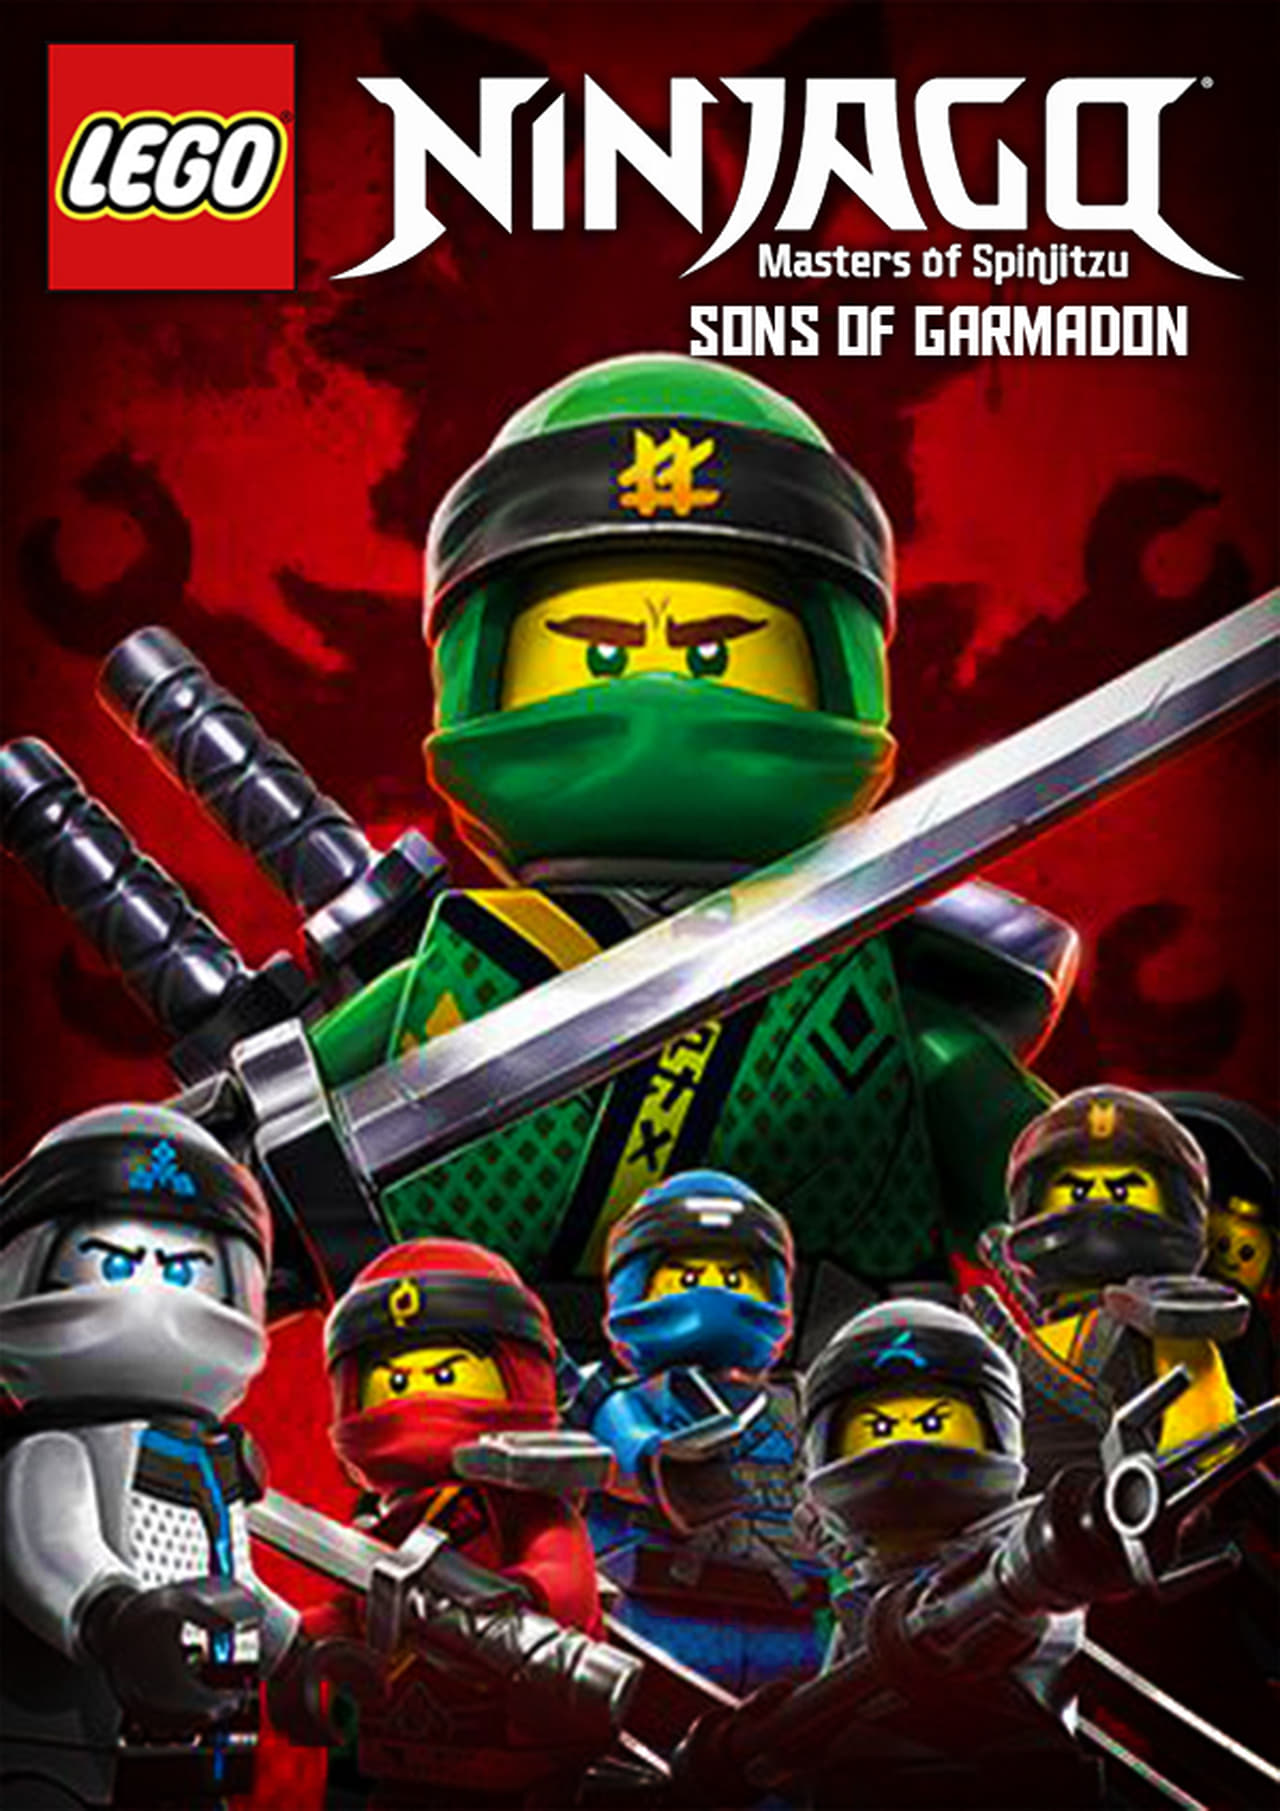 Putlocker Lego Ninjago: Masters Of Spinjitzu Season 8 (2018)